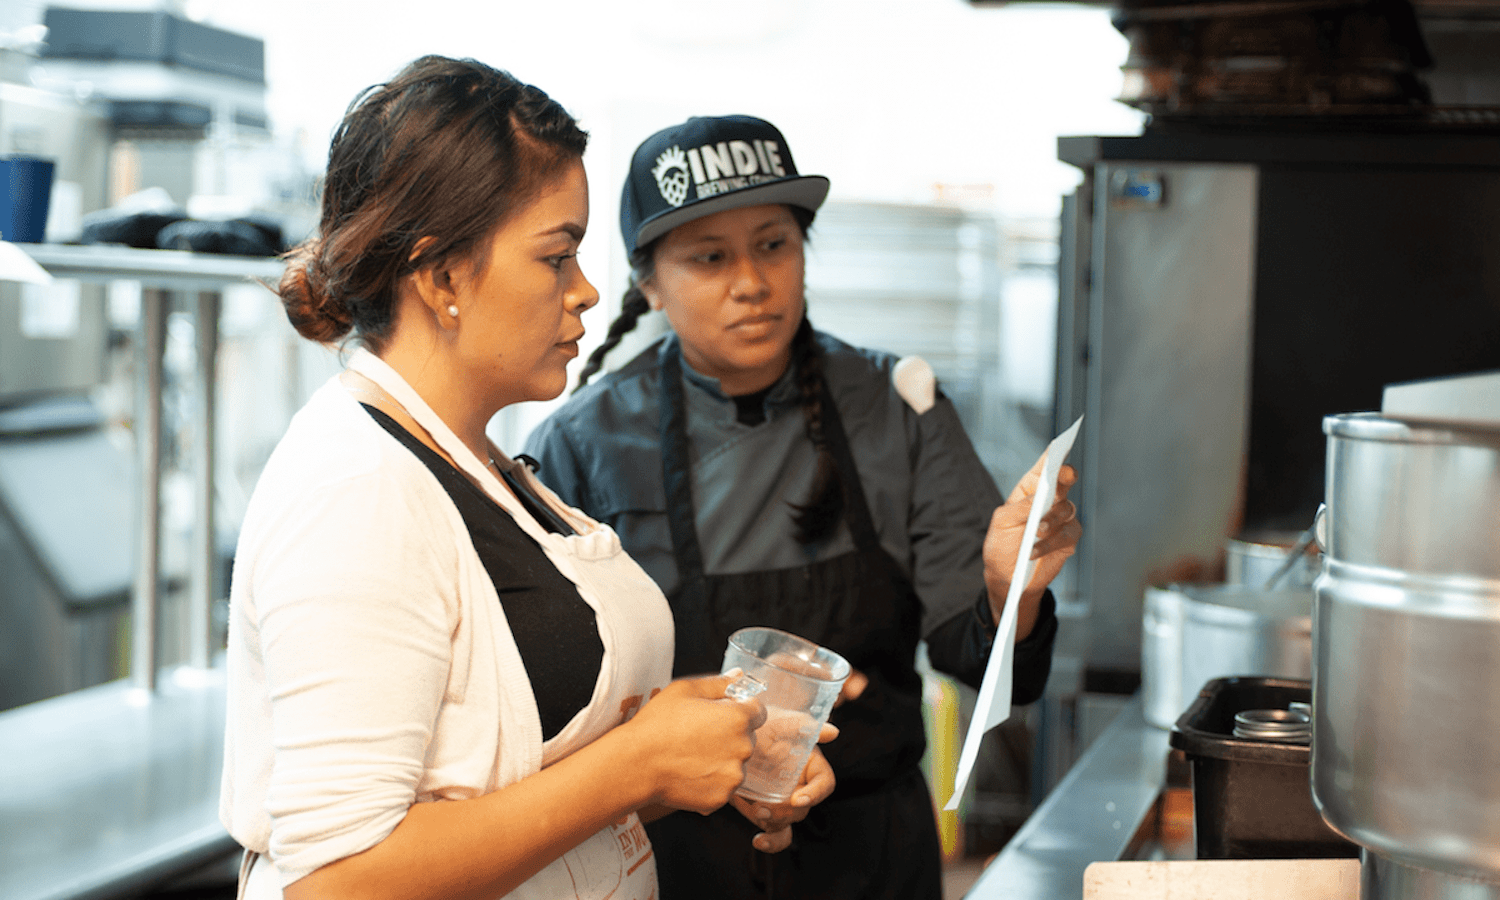 Food Shift Seeks to Expand its Impact through a New Kitchen